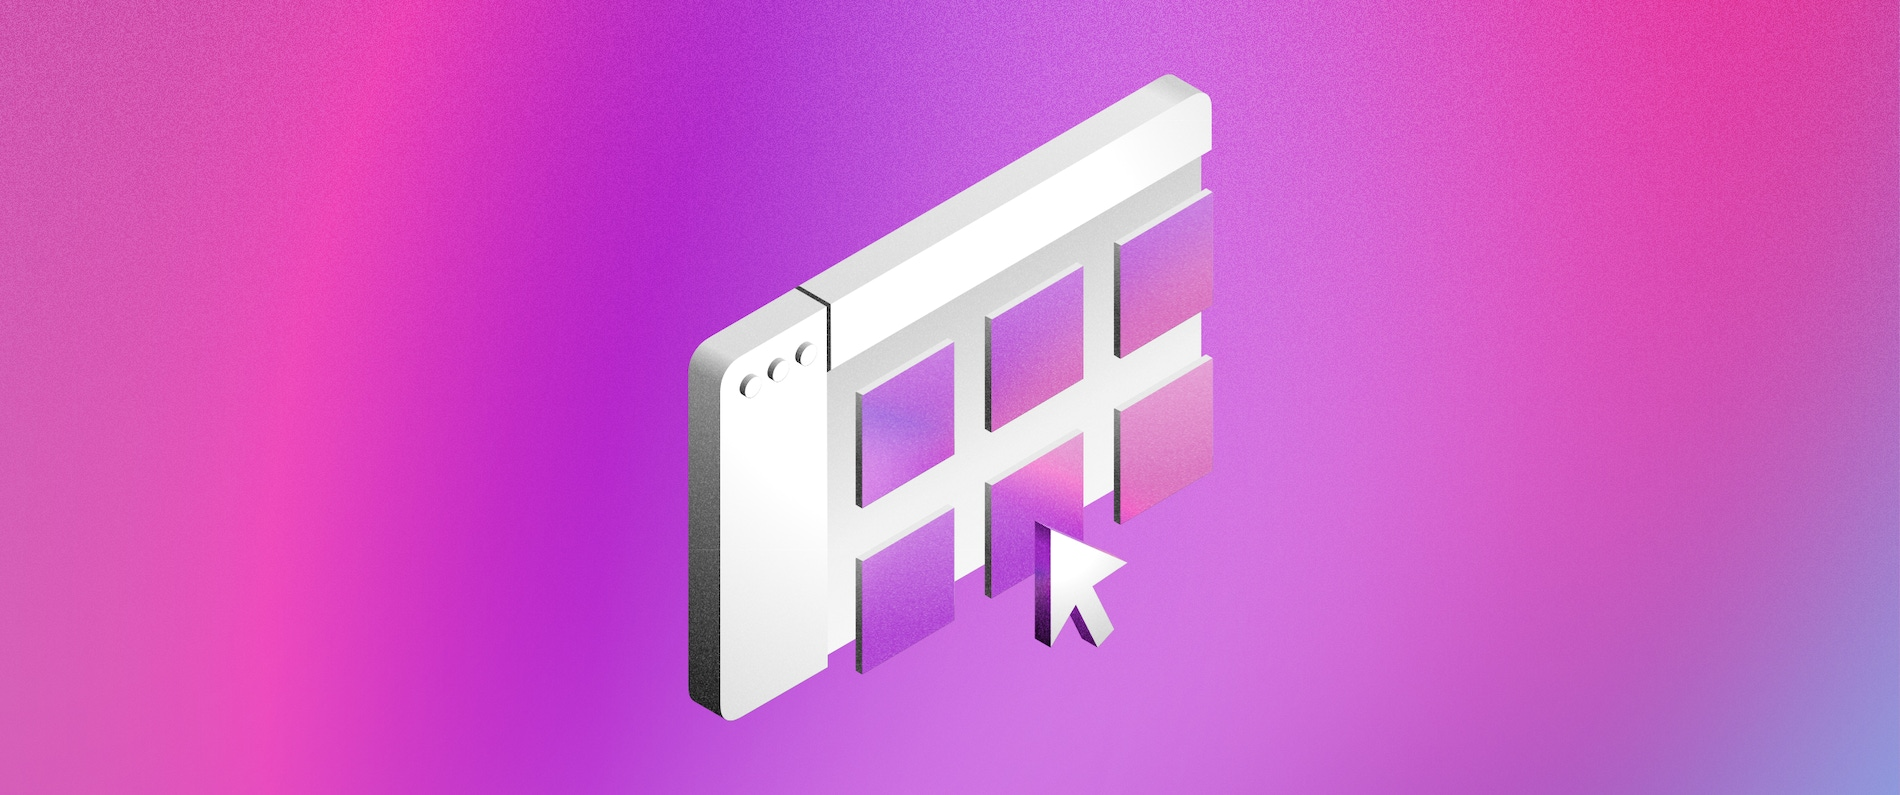 Header image depicting a window with tiles with a purple background.